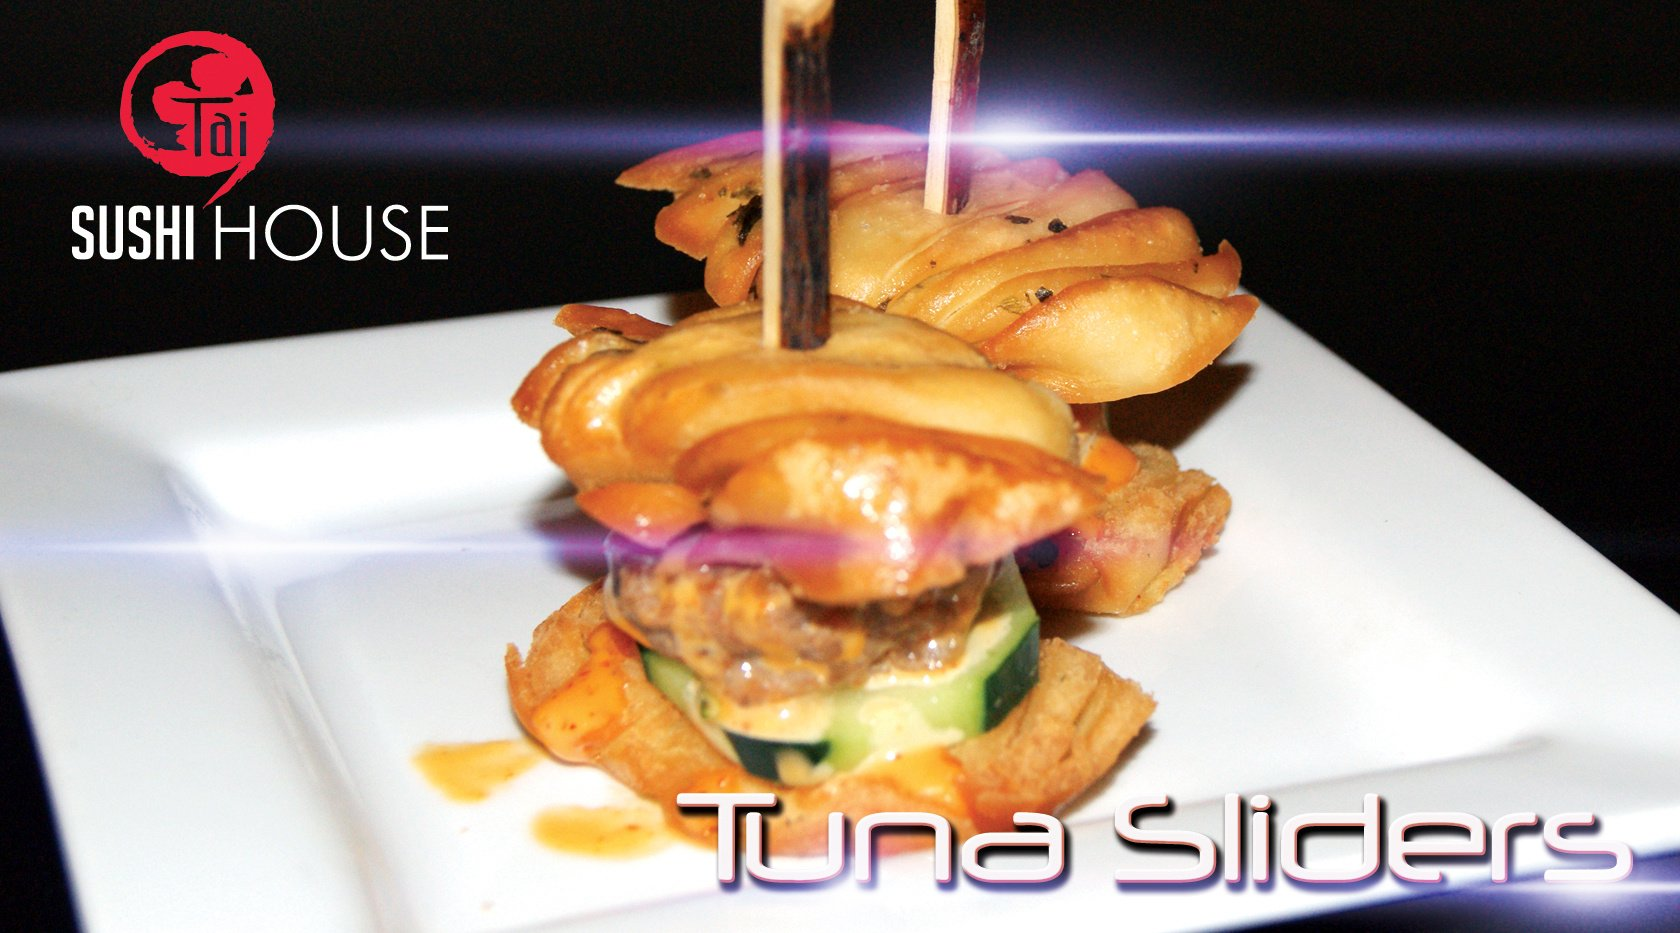 Tuna Sliders